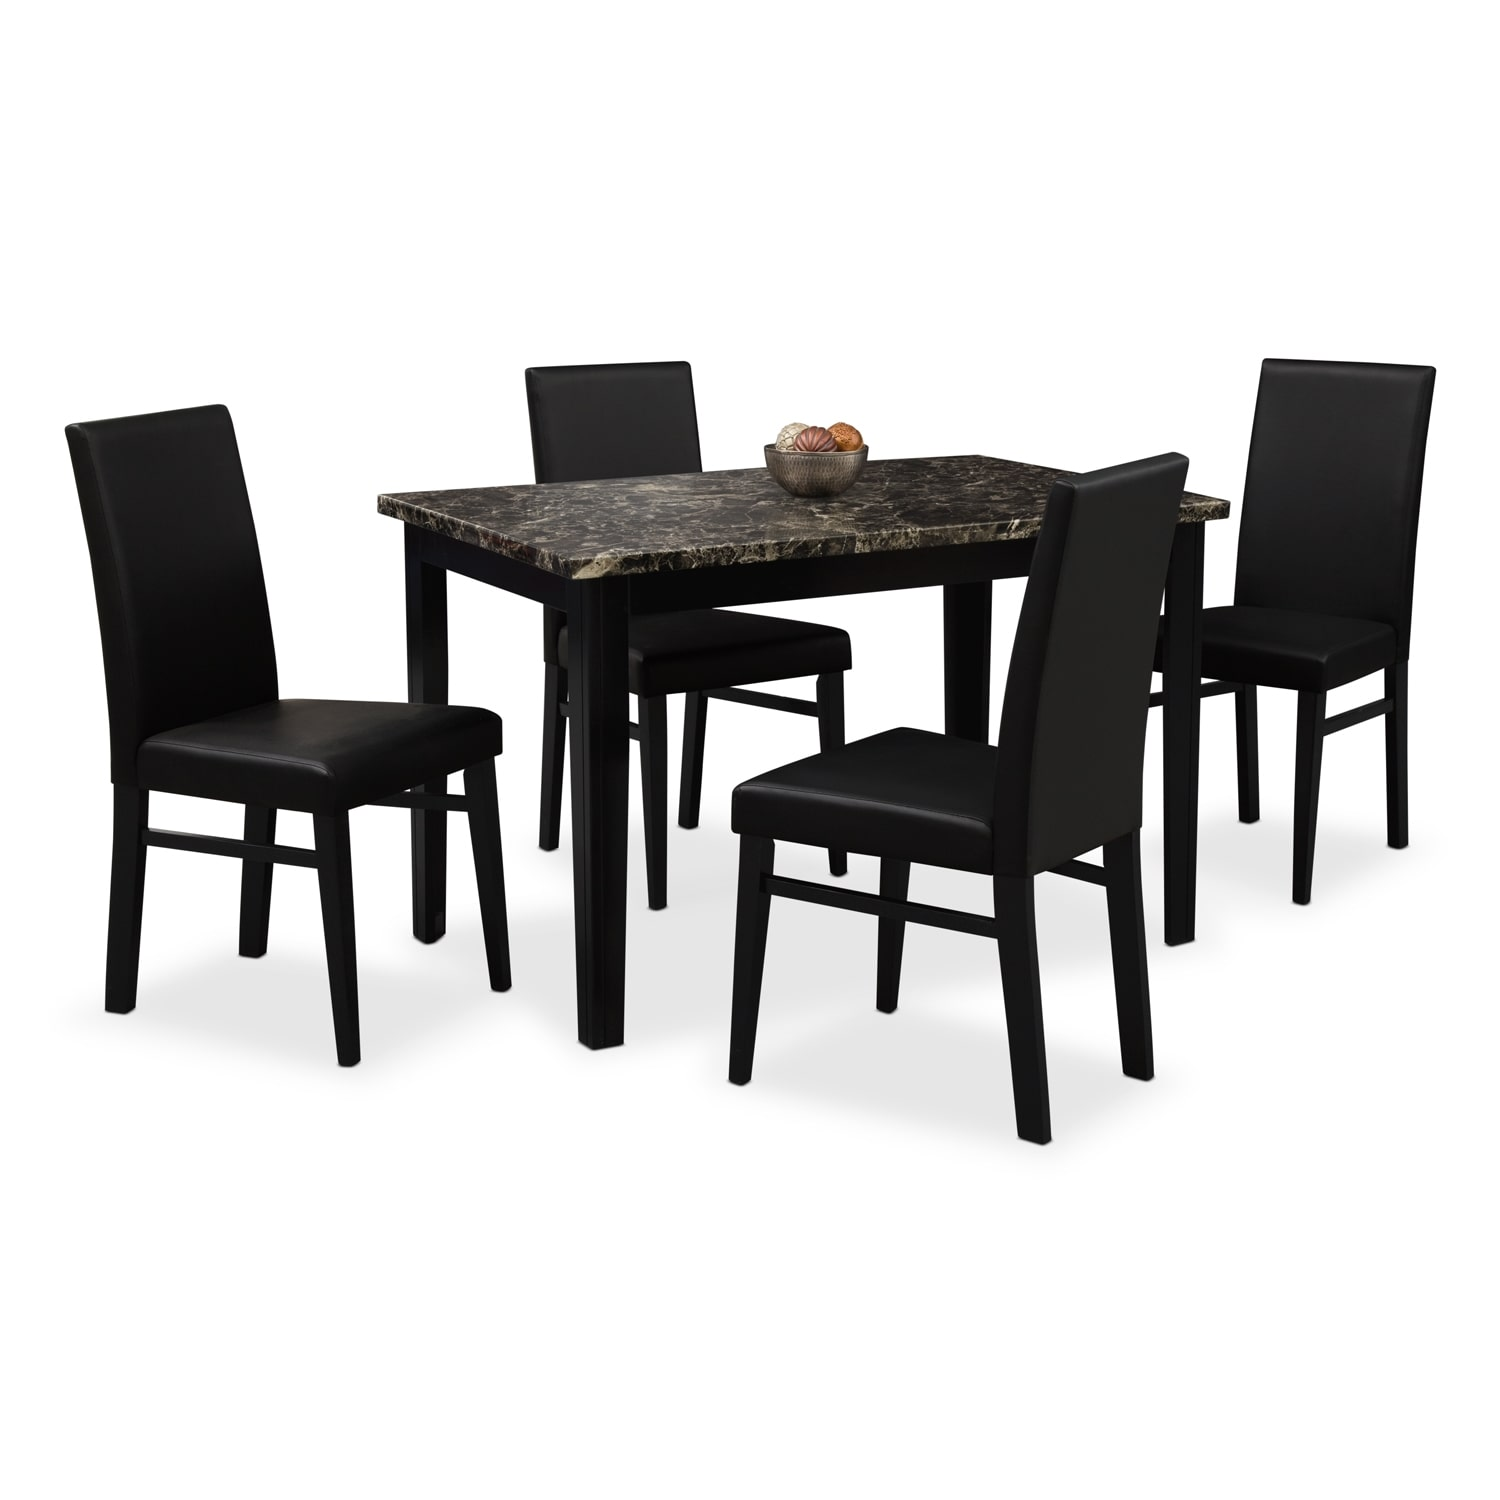 Shadow table and chairs black value city furniture